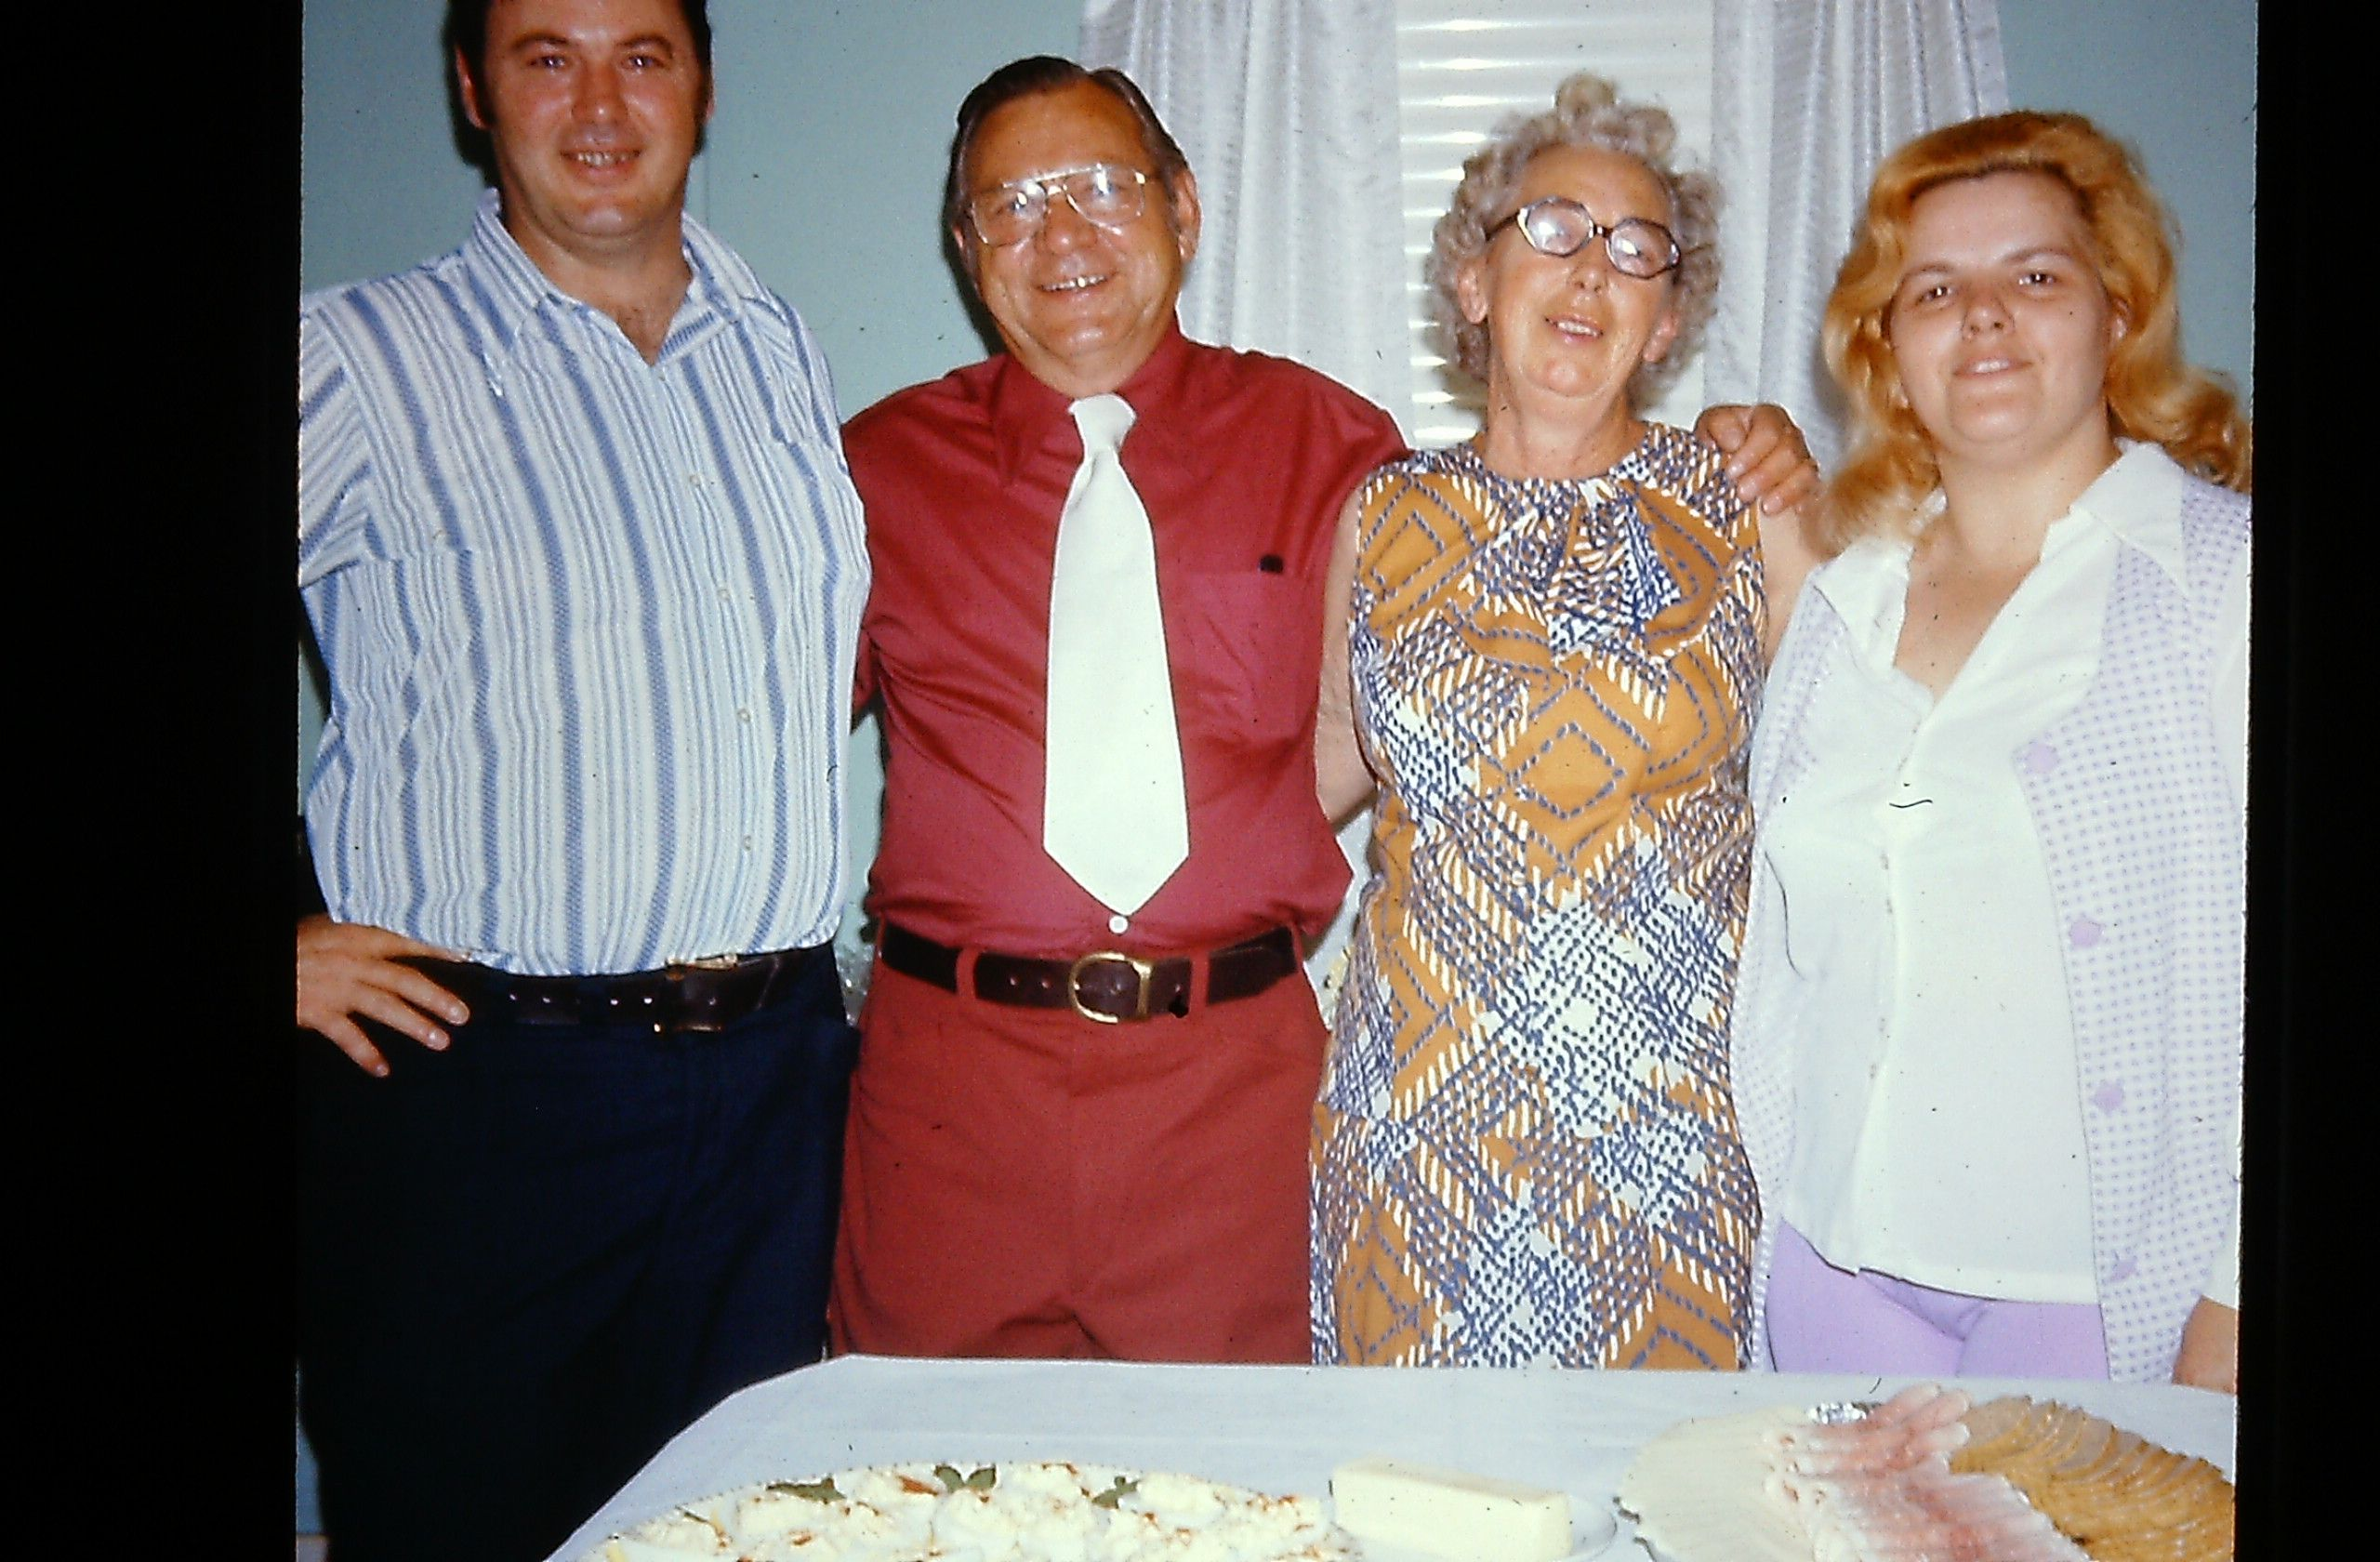 Grandma and Grandpa's 40th Anniversay Party at mom and dad's in Schenectady, about 1970